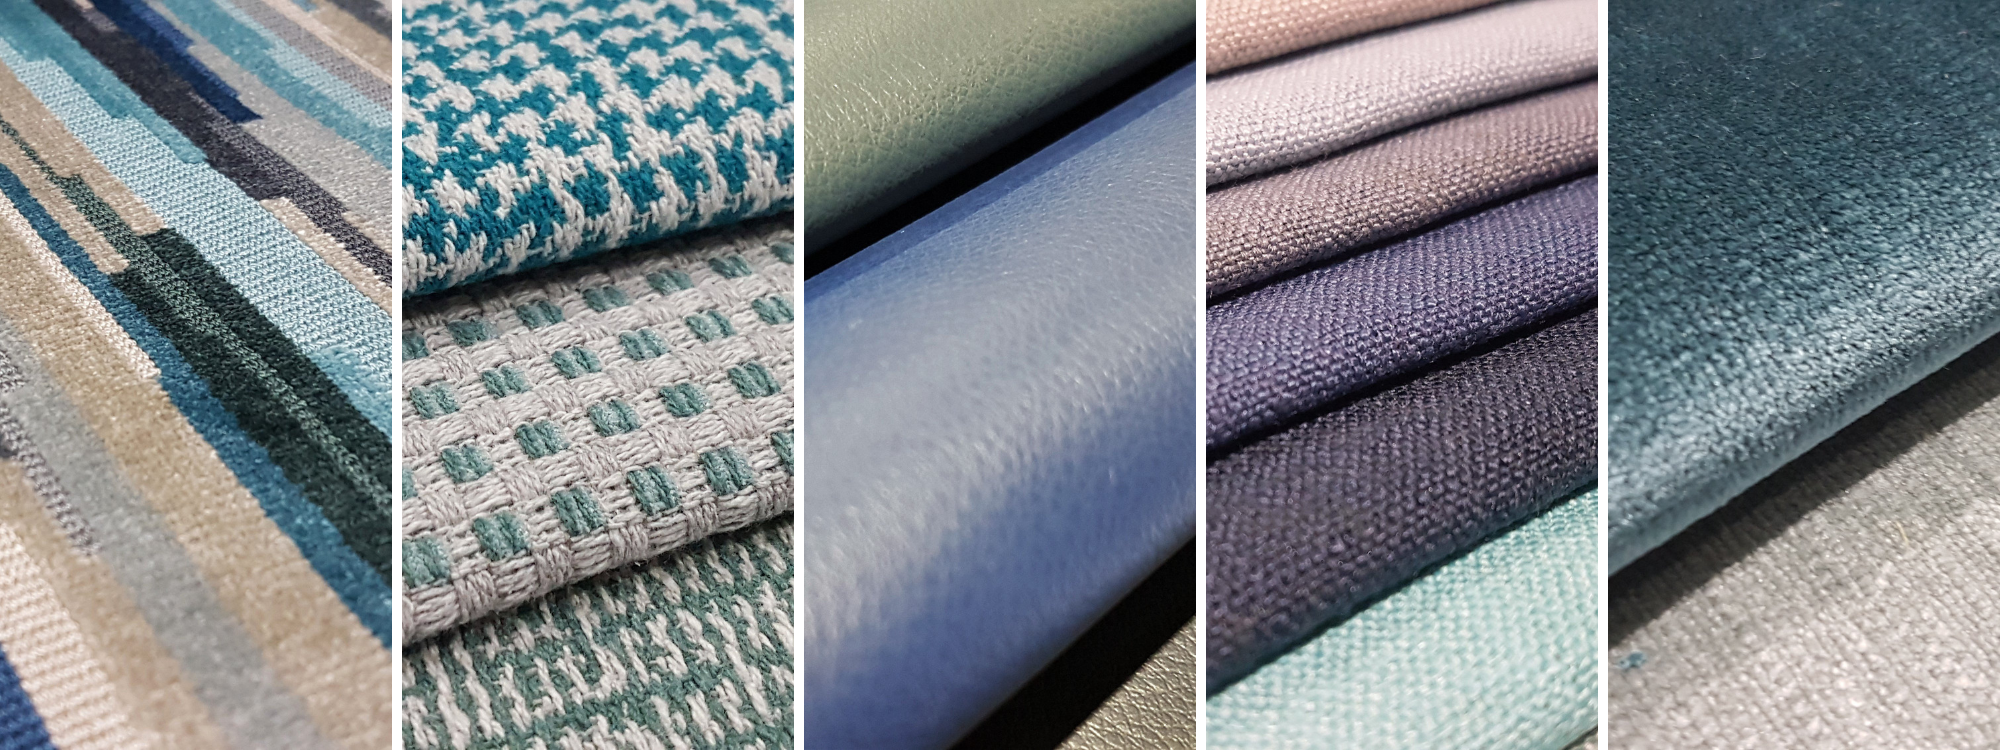 5 great fabric choices for upholstery